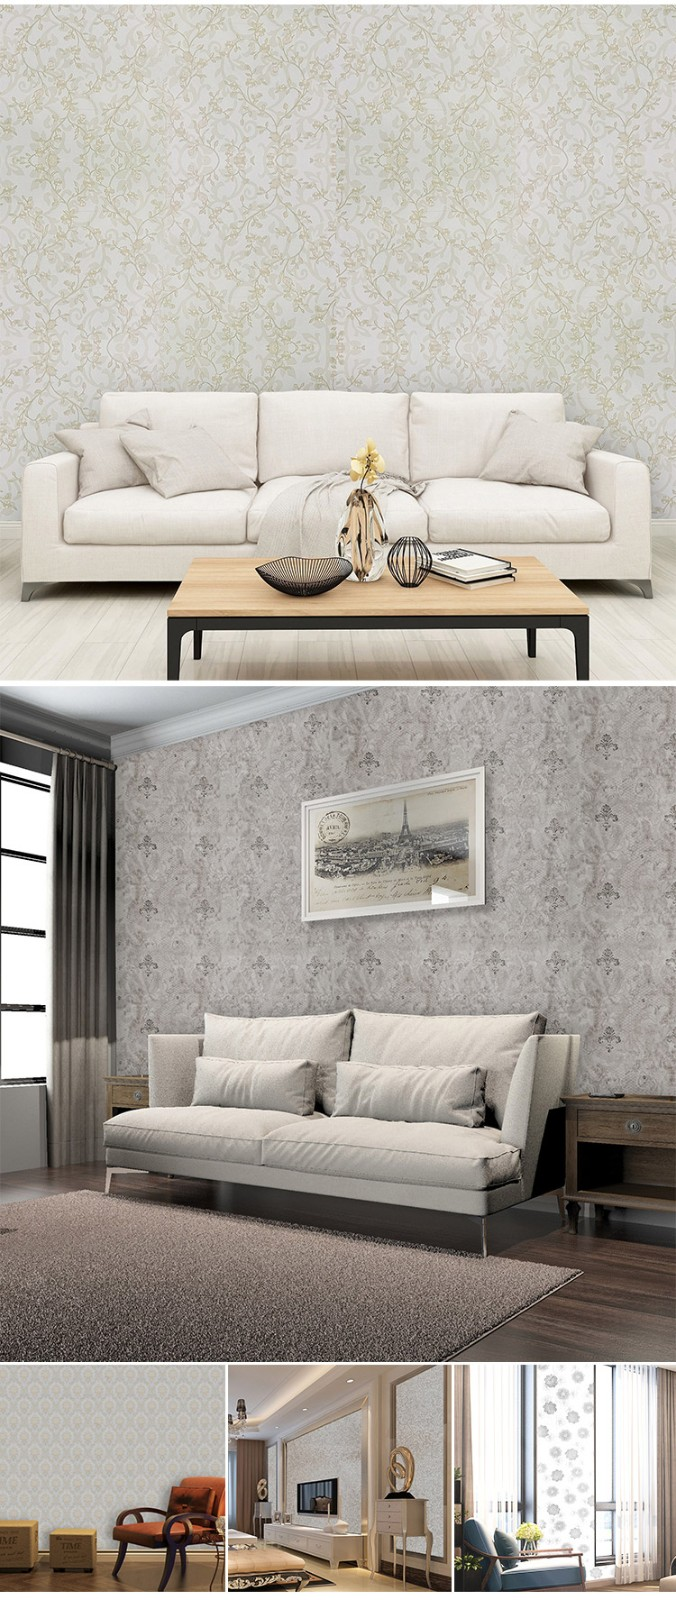 SUNYE cheap pvc wallpaper for wall factory direct supply for sale-6